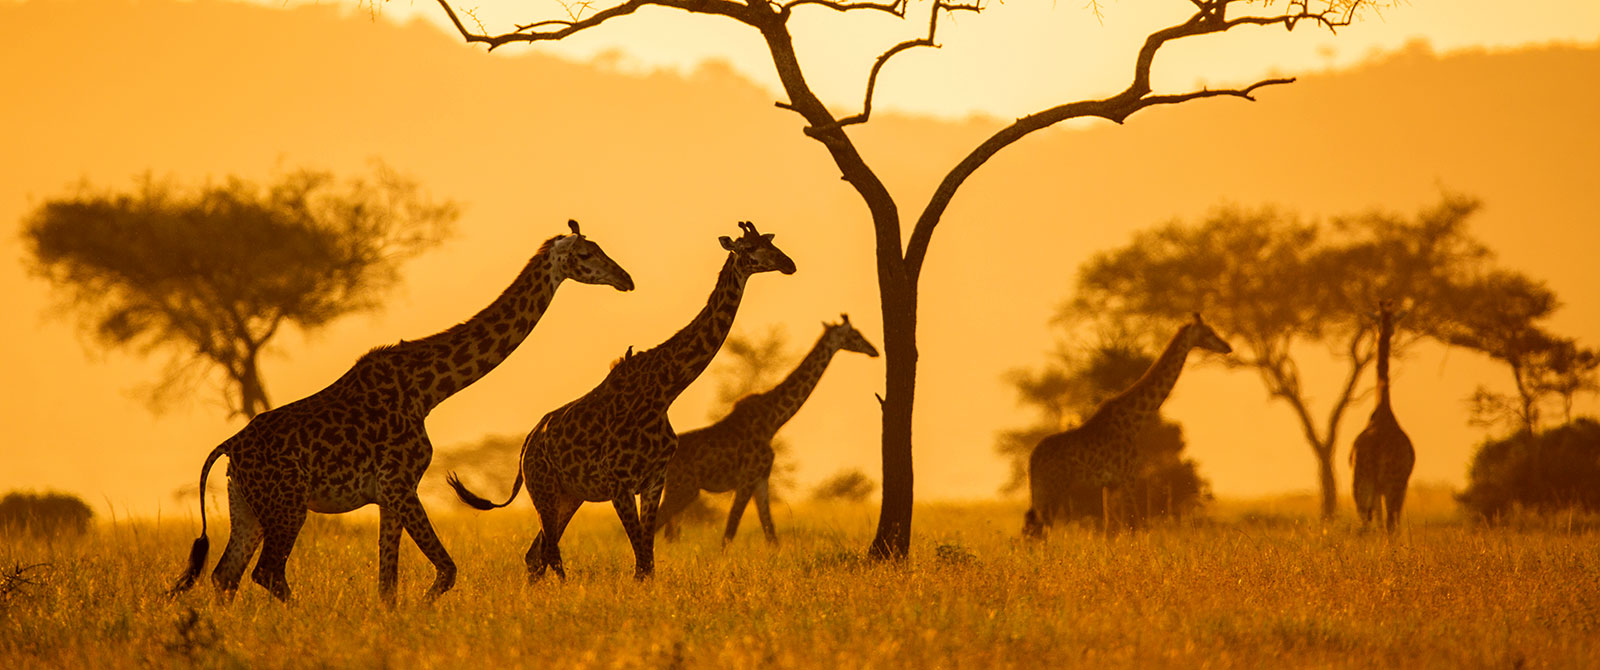 Giraffes on the Plains of East Africa at Sunset